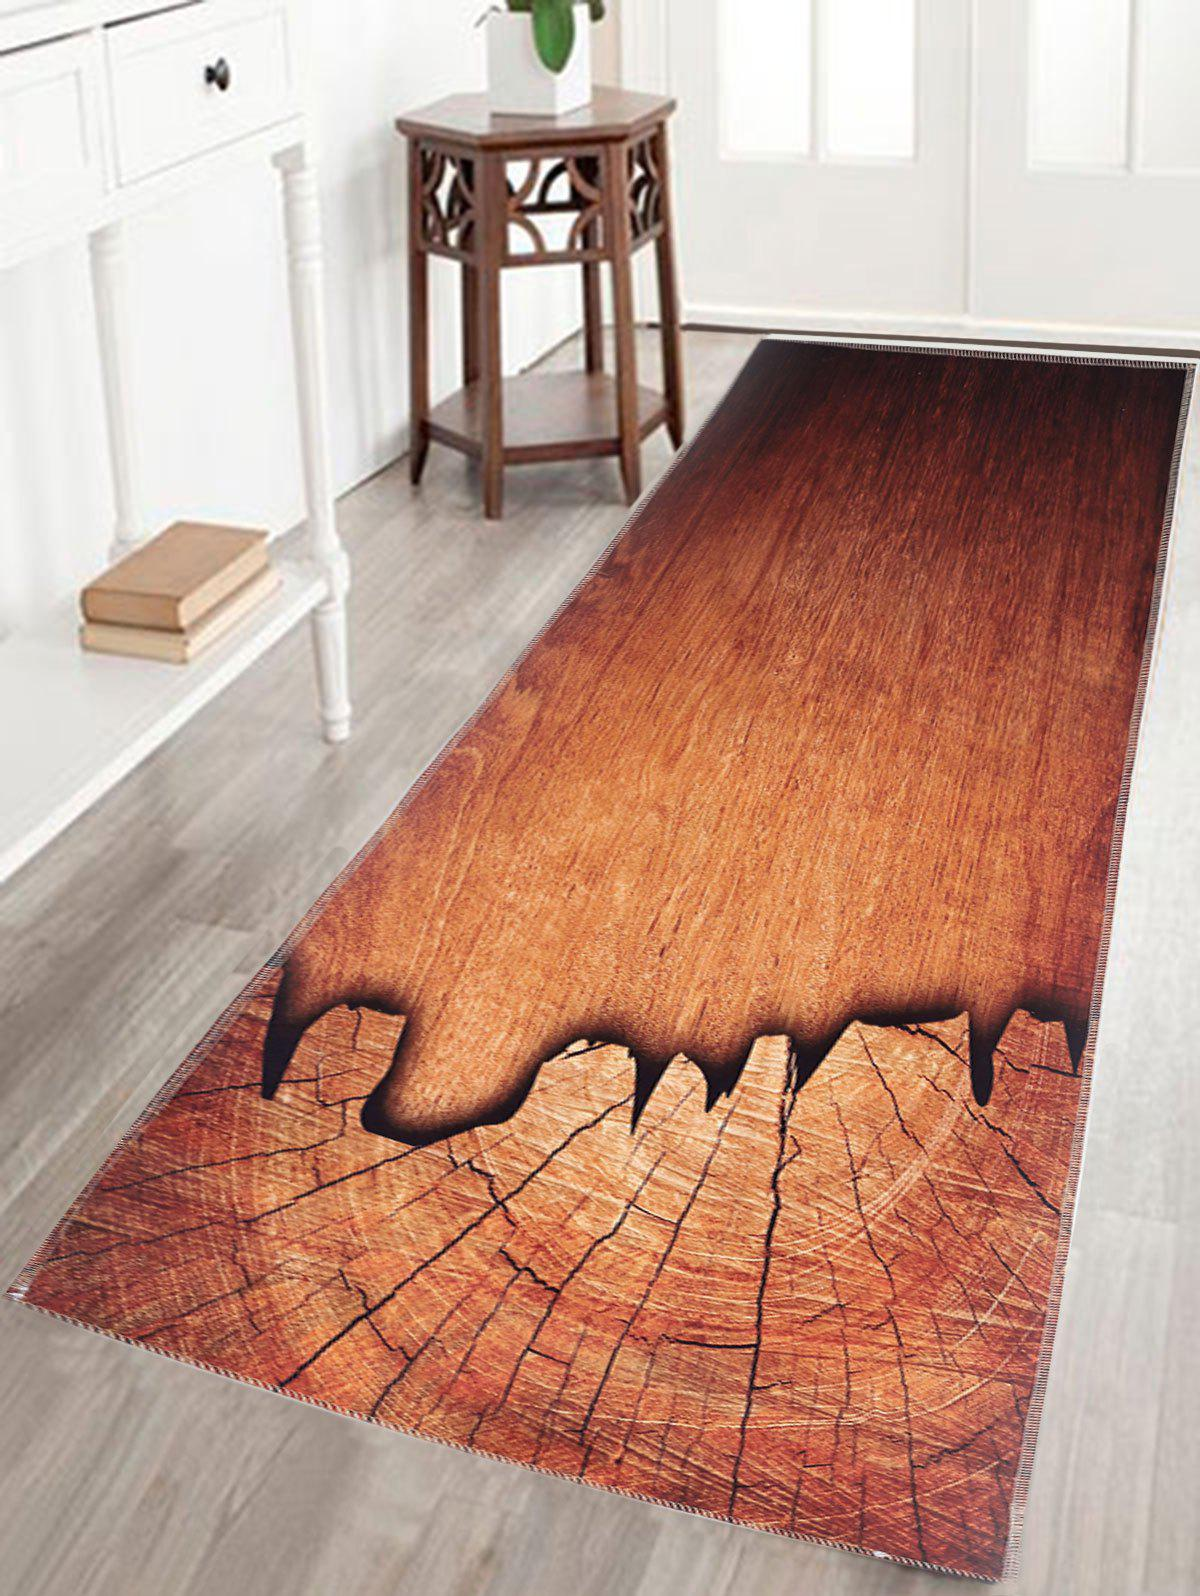 Wood Grain Print Water Absorption Bath Bathroom Rug skidproof water absorption bathroom rug with wood grain print